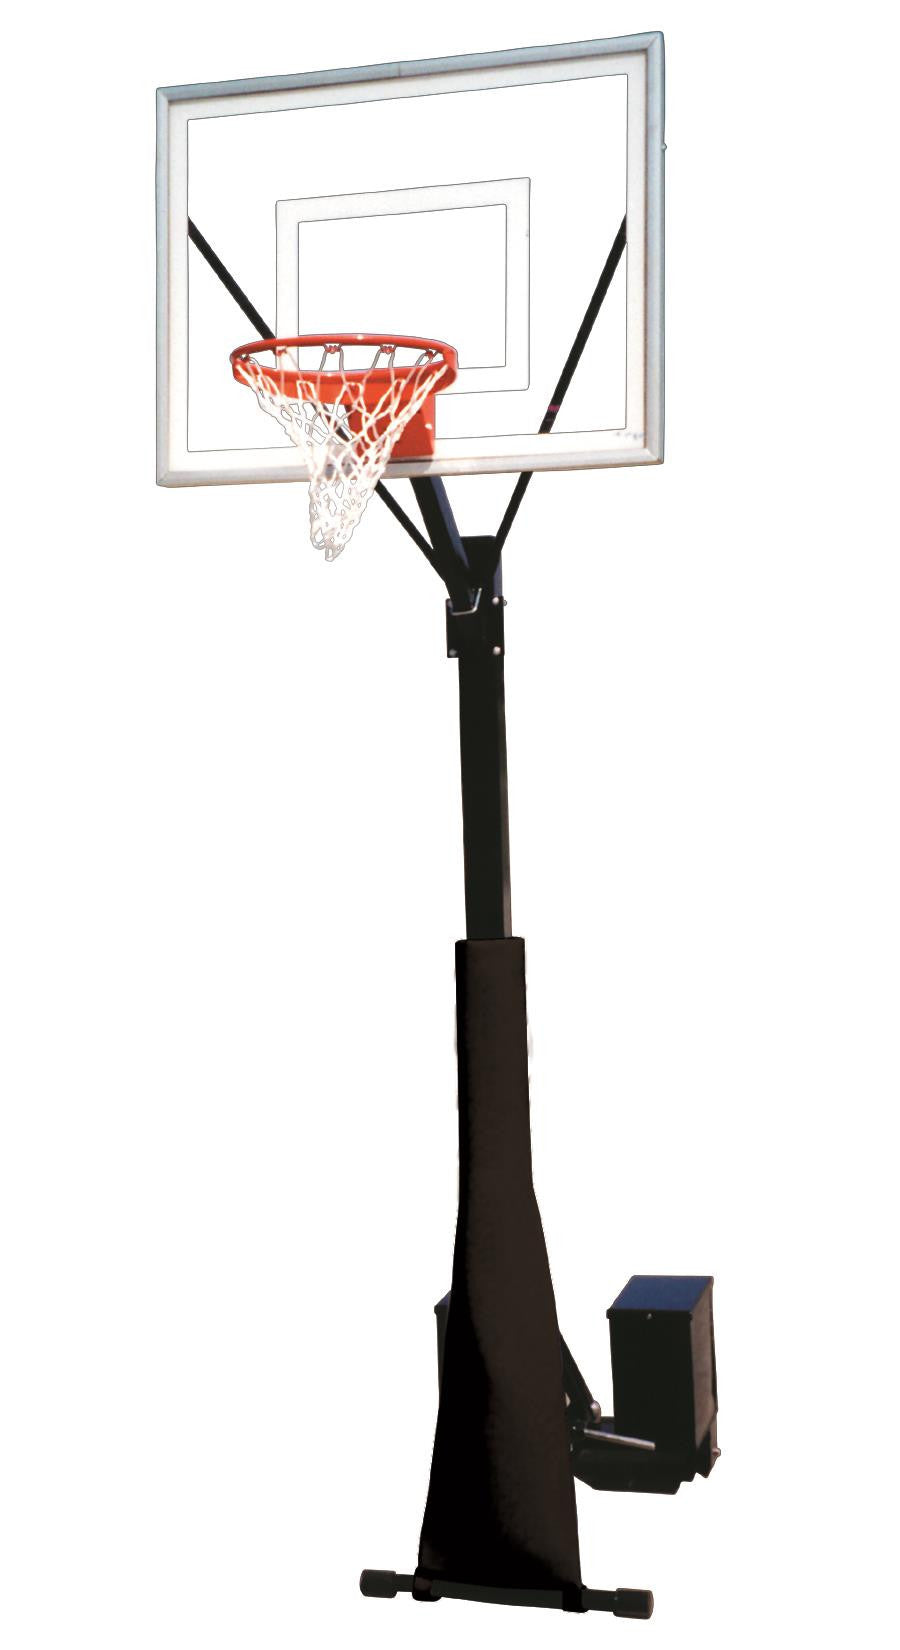 First Team Rolla Sport III Portable Fixed Height Basketball Hoop 54 inch Acrylic